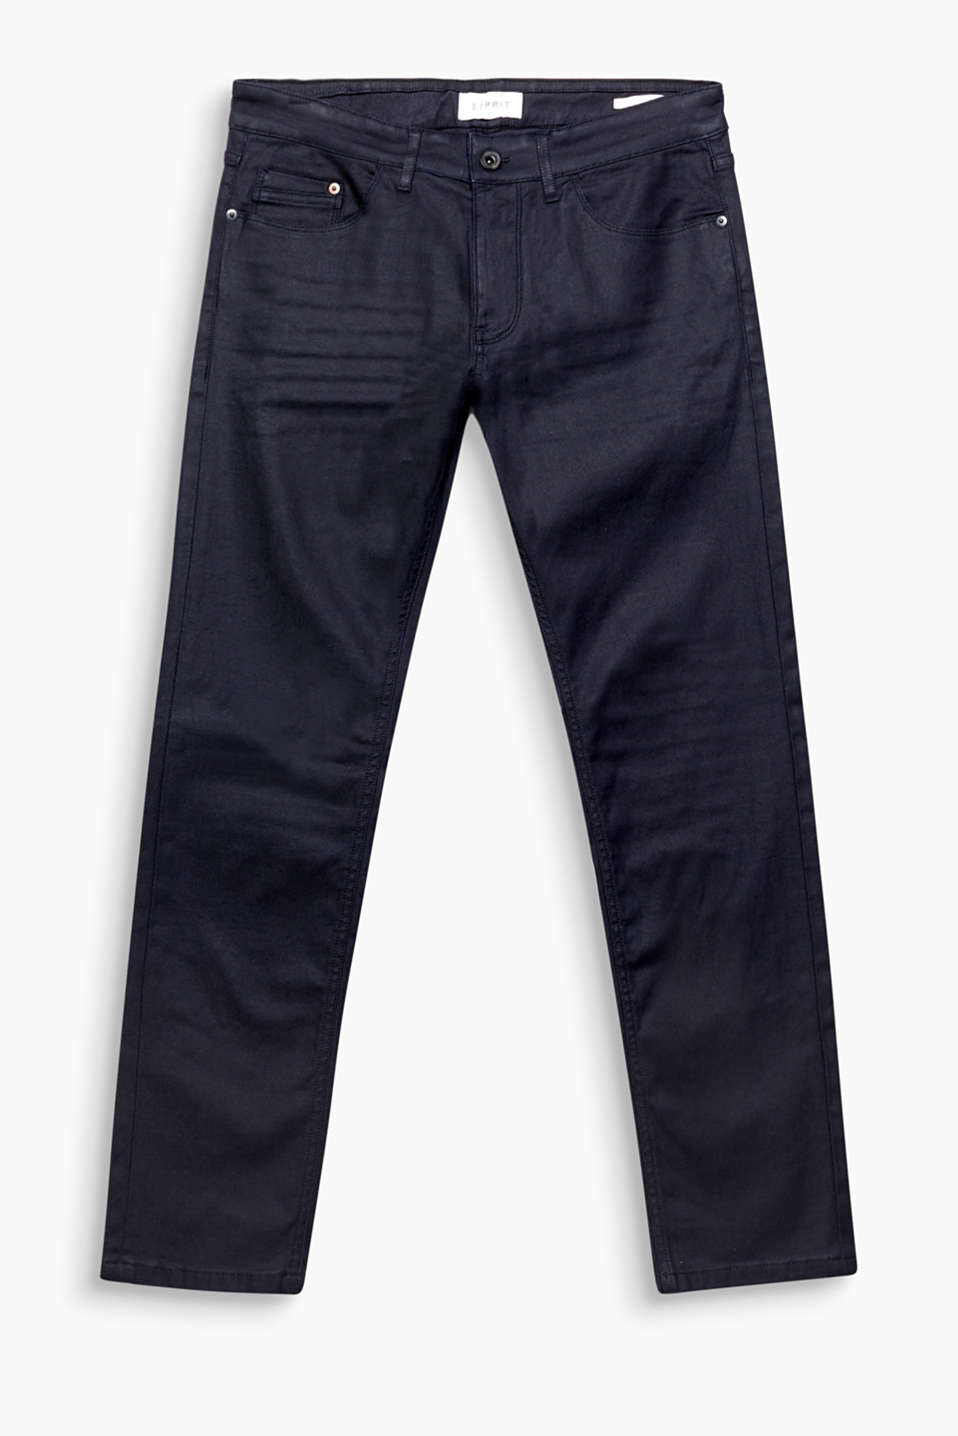 Coated and stretchy! These five-pocket jeans impress with their matte coating.